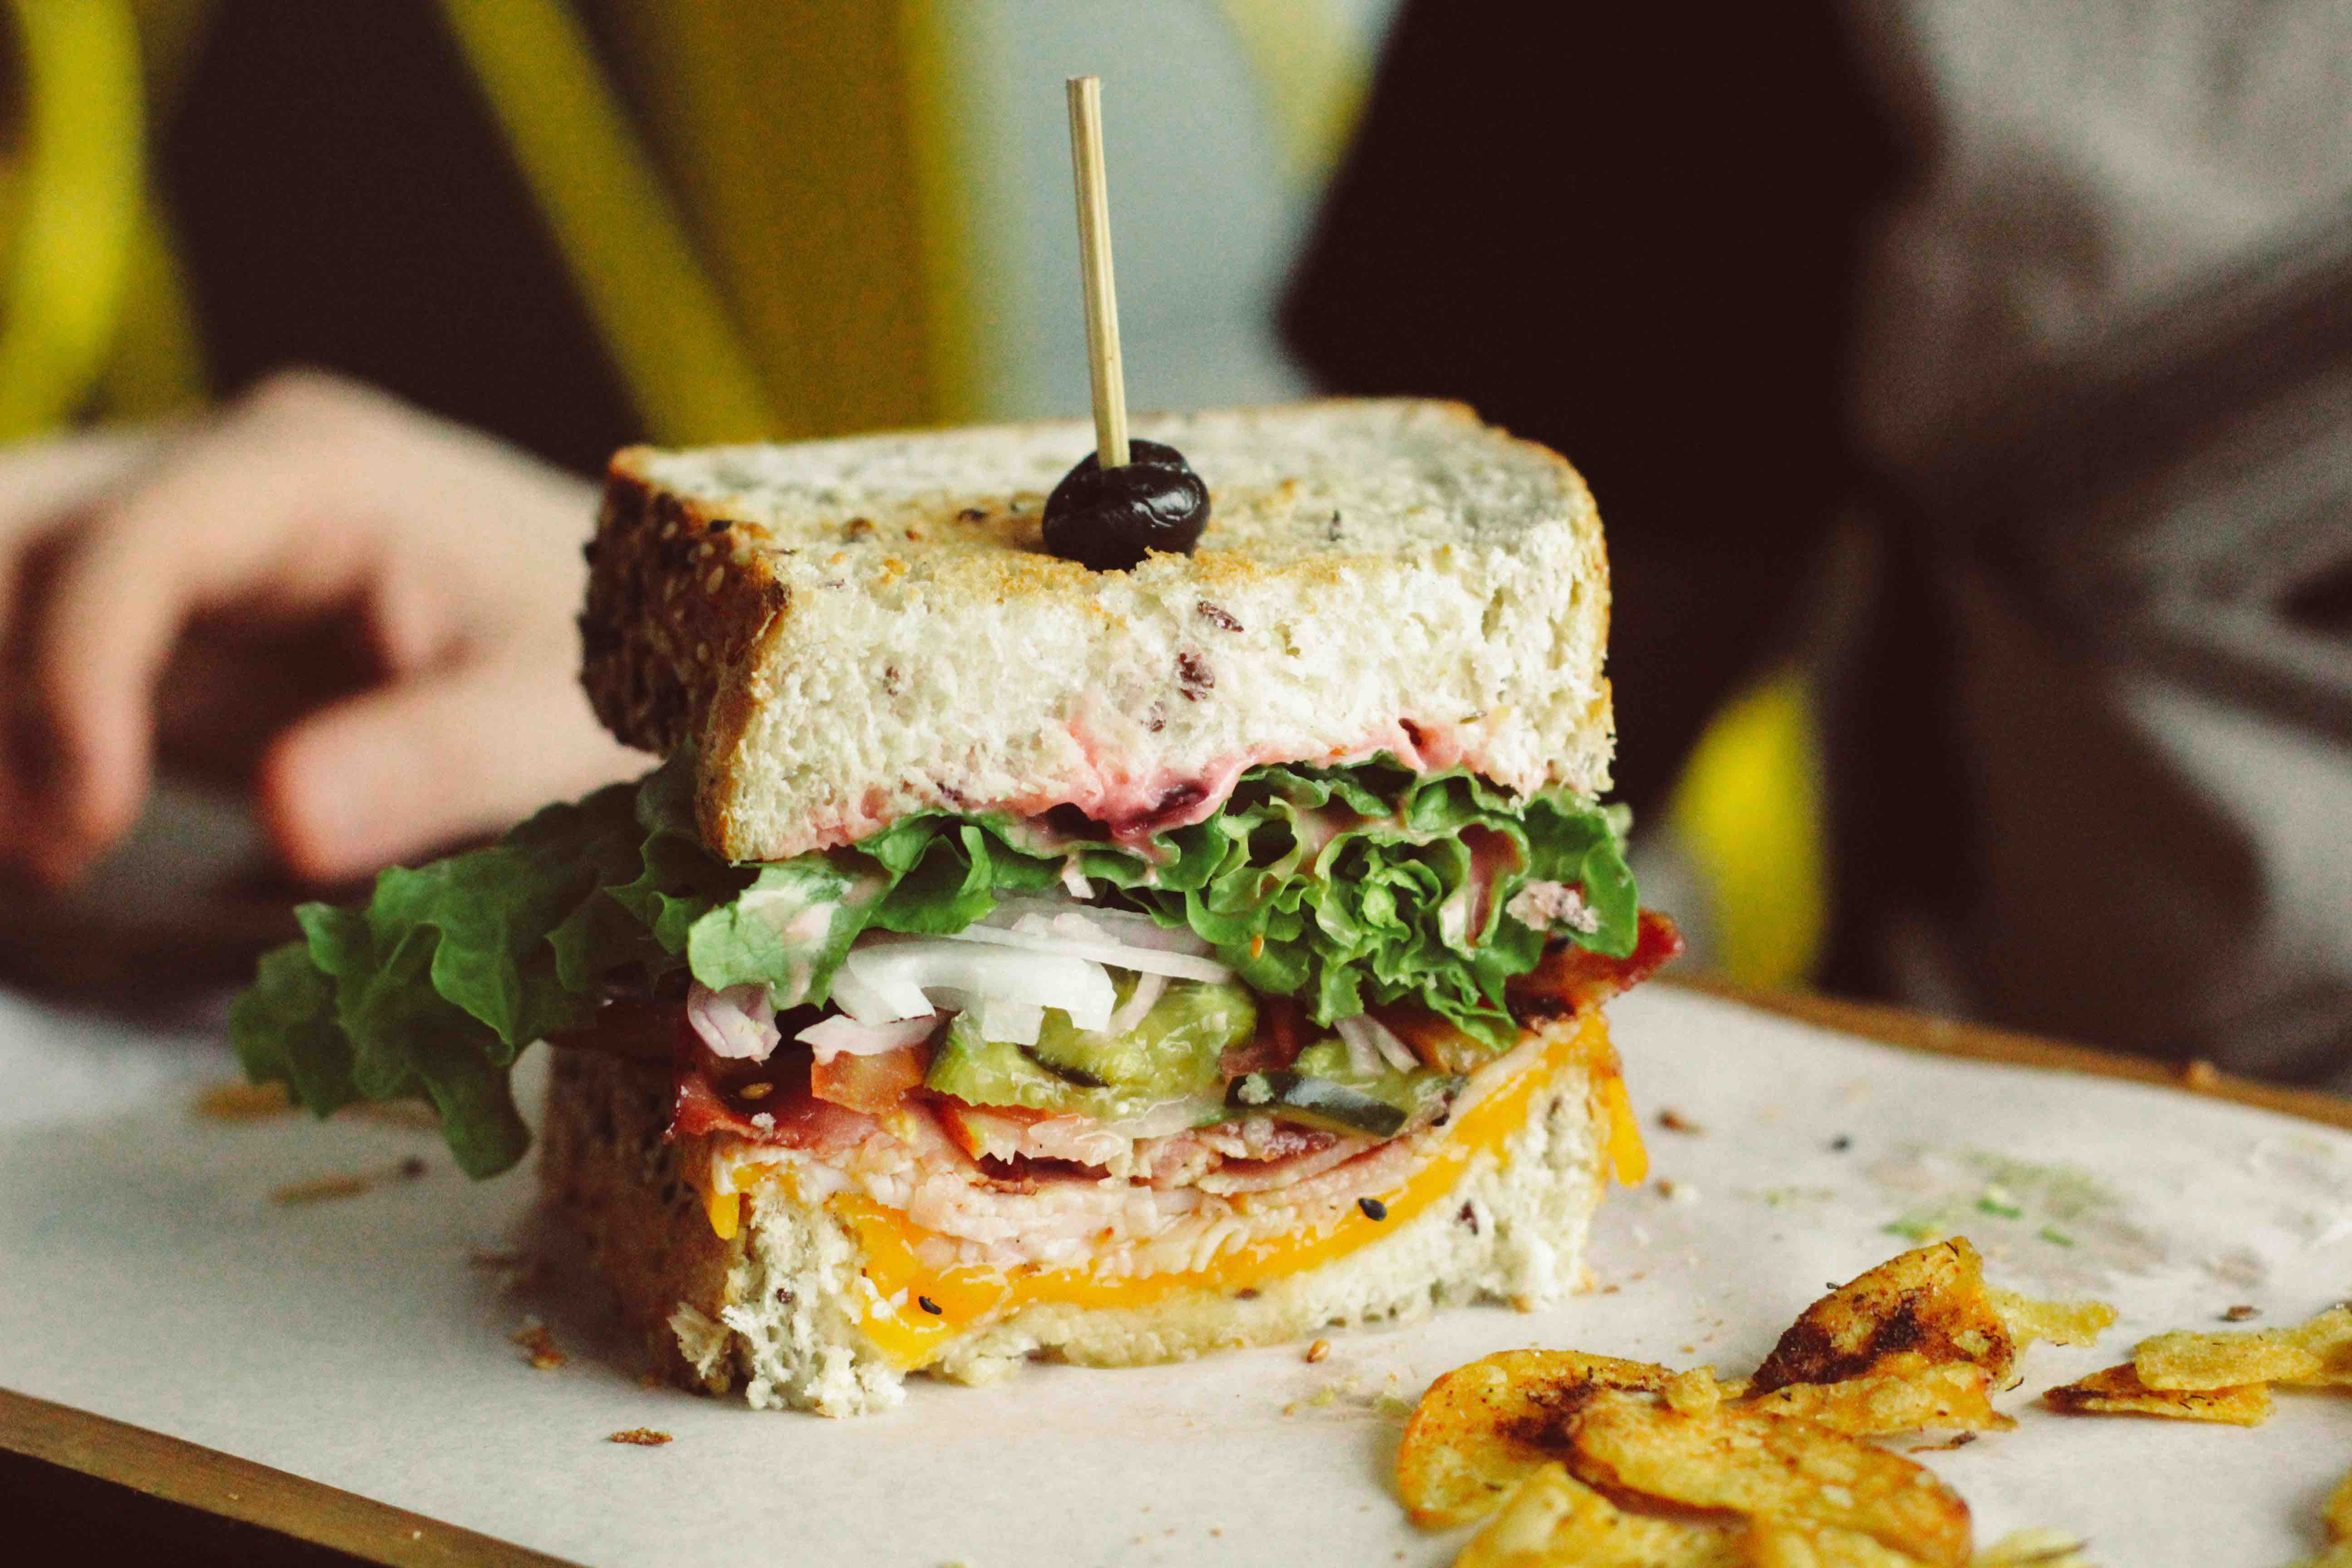 10 Reasons Why National Sandwich Month is the Tastiest Time of Year